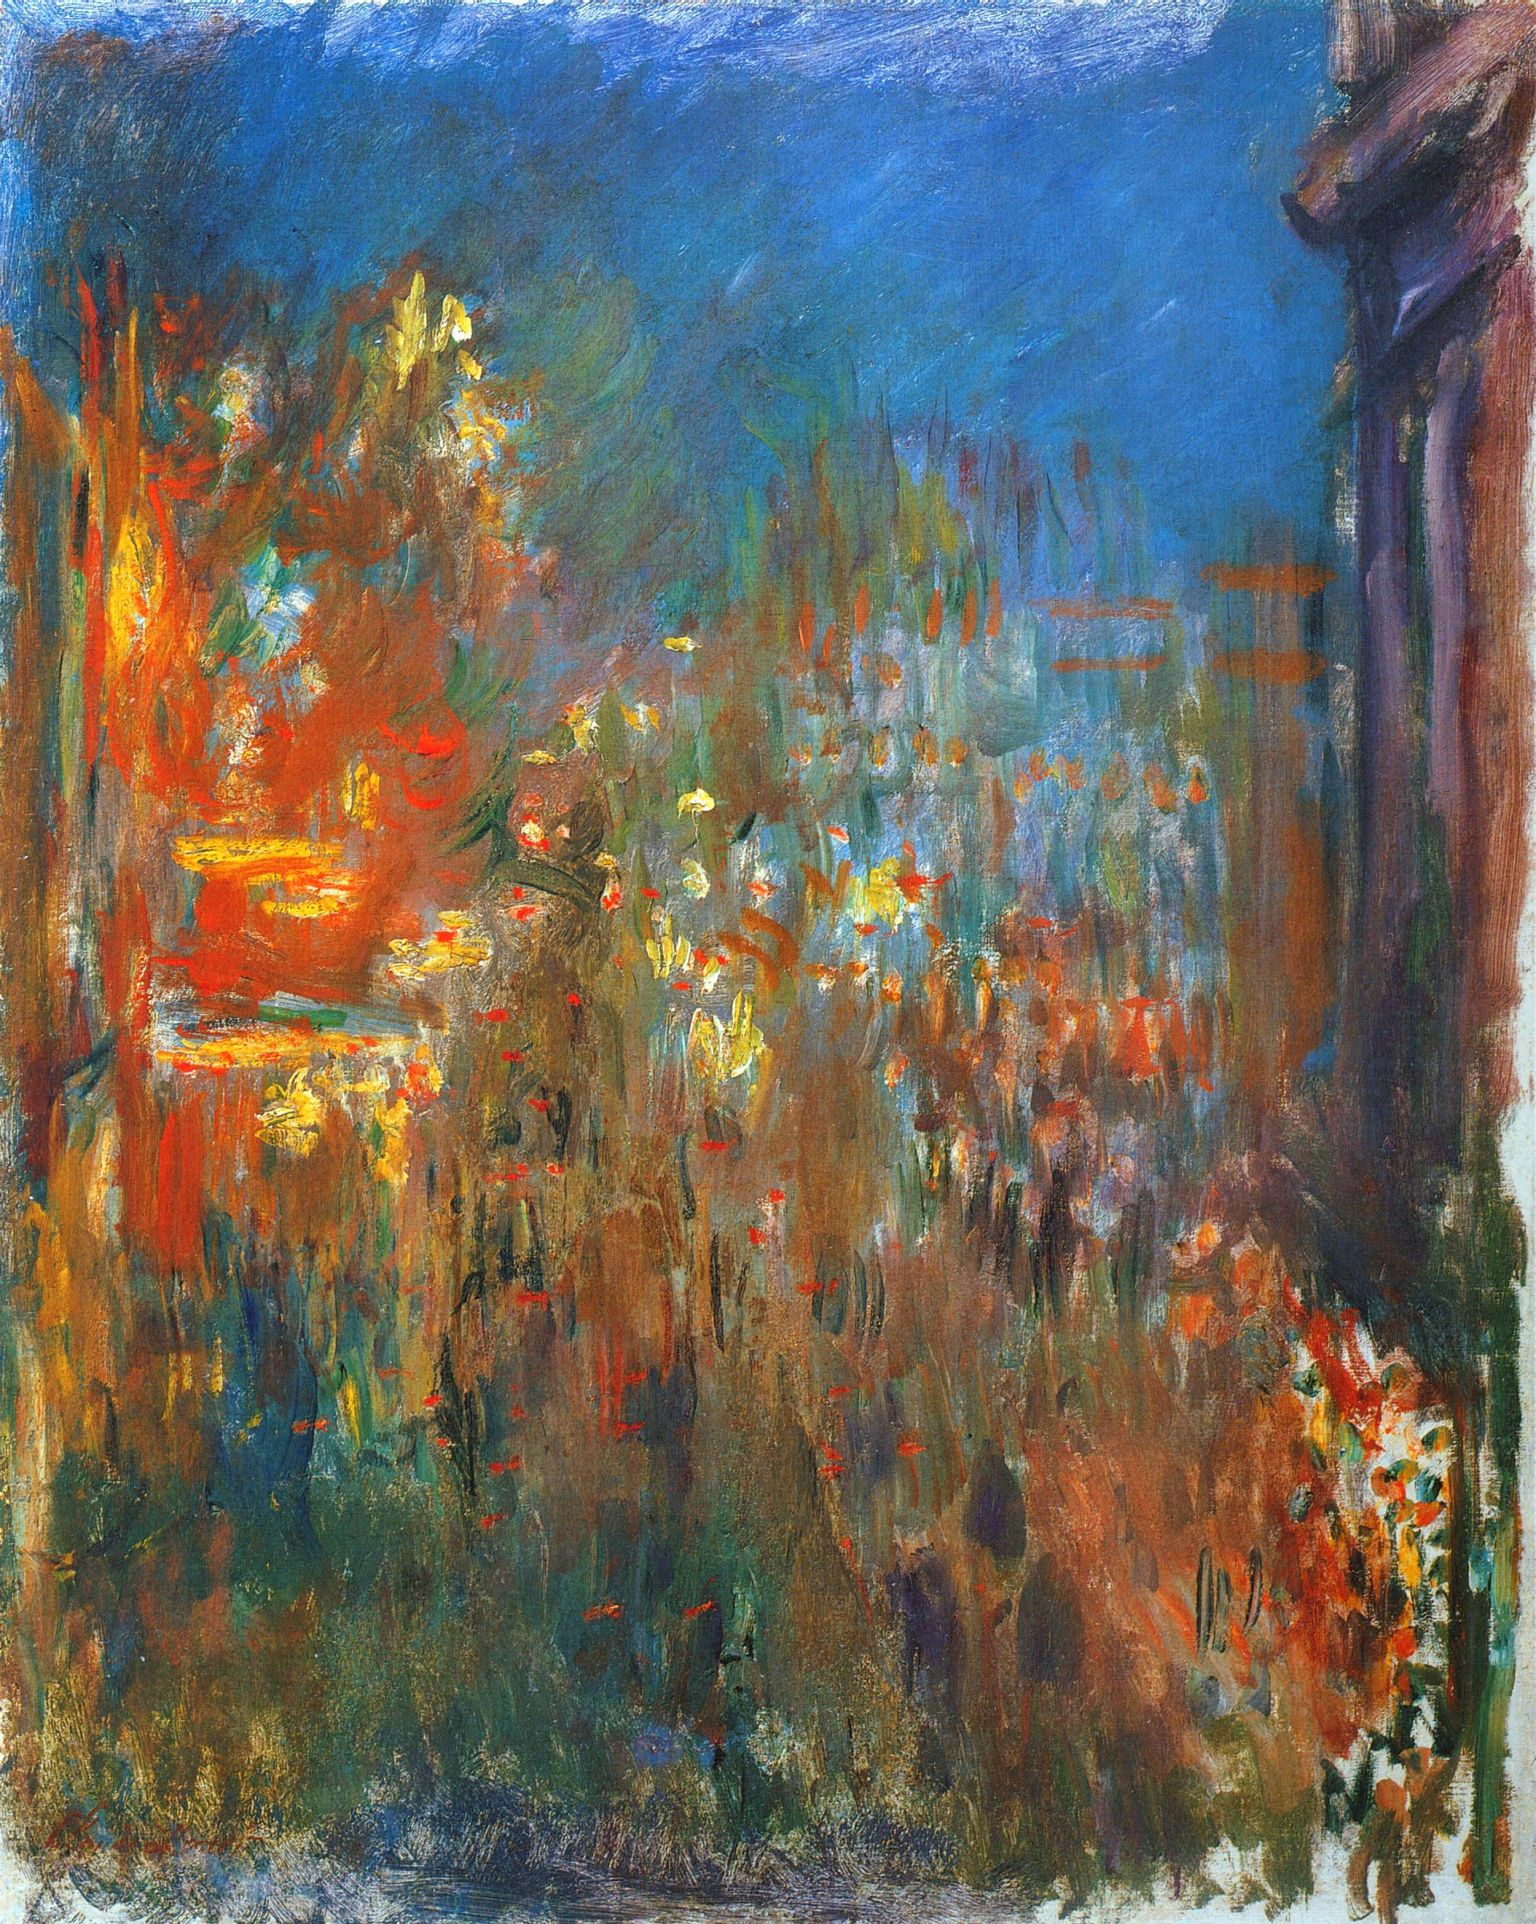 Leicester Square at Night by Claude Monet | Pinturas impresionistas, Claude  monet y Monet